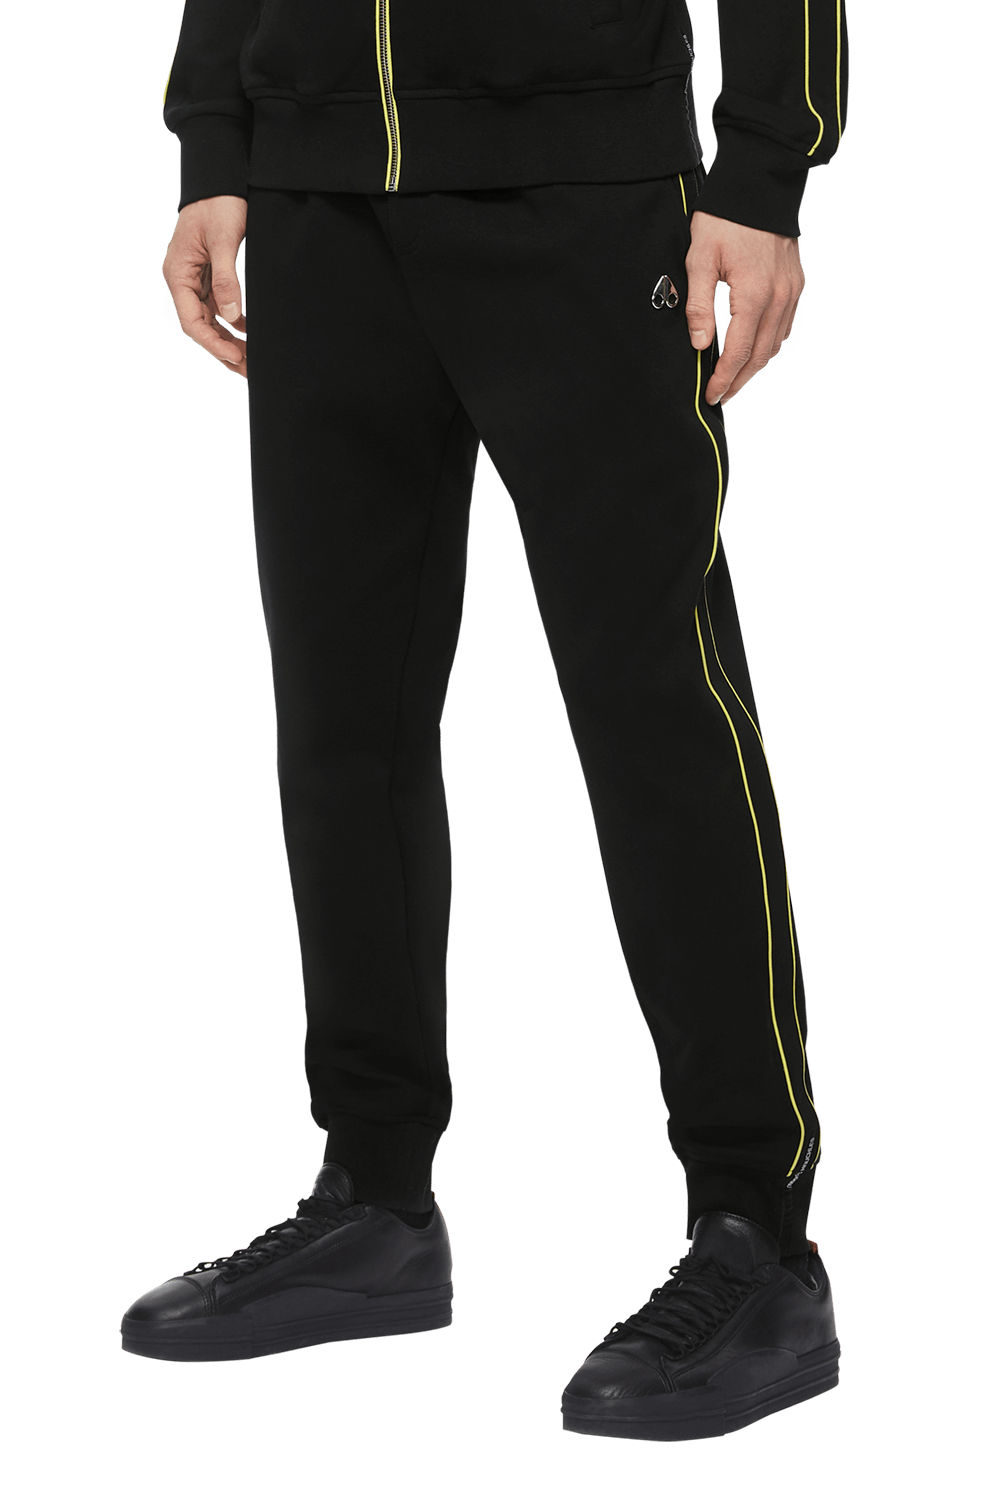 Stereogram Pants M11MR760 Black Front